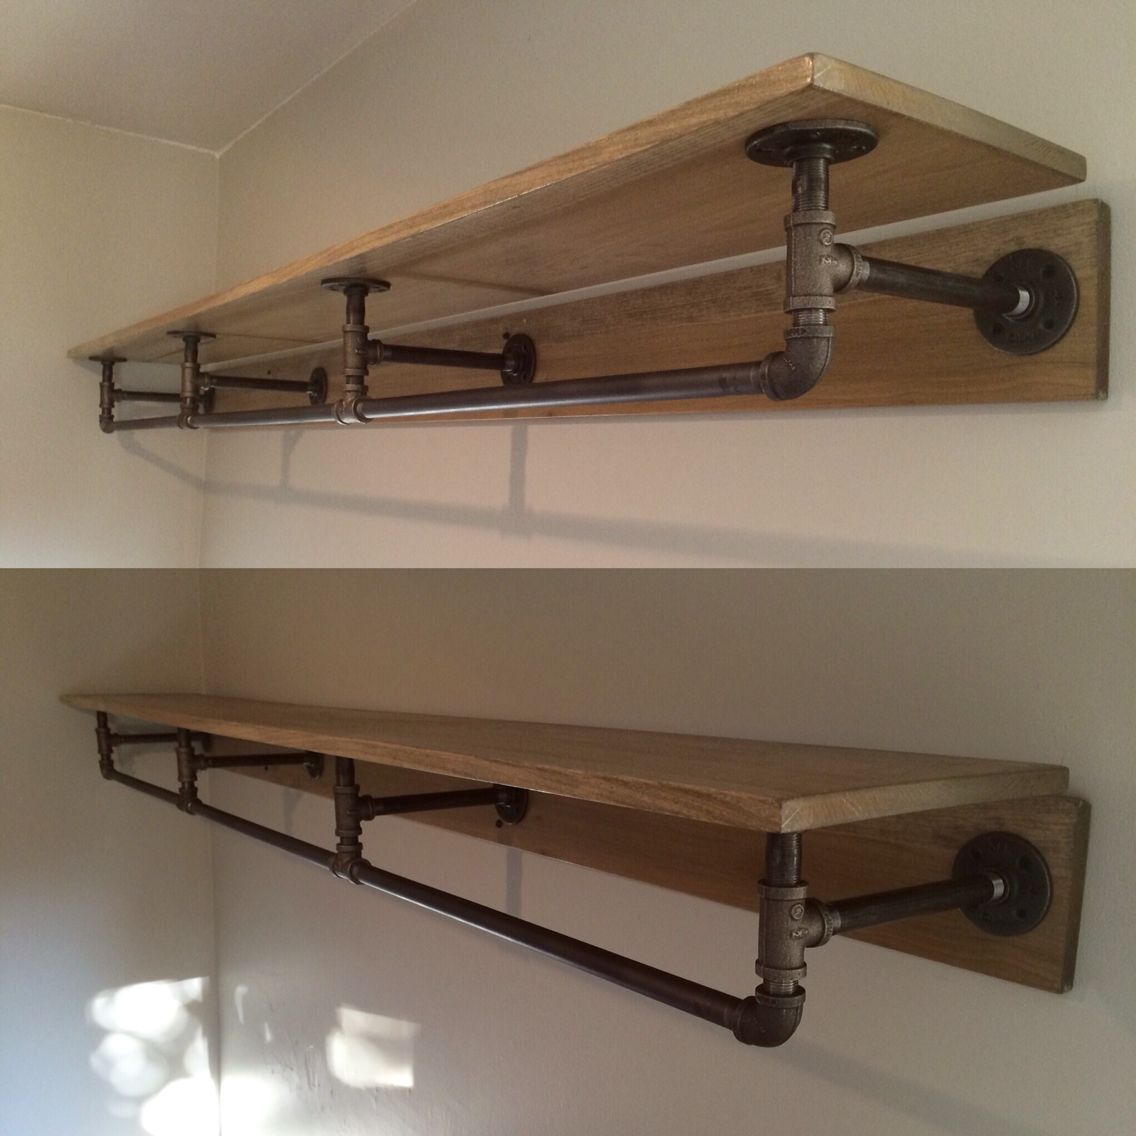 Pipe Shelves Kitchen: Pipe Shelving. Made From Metal Piping And Stained Wood